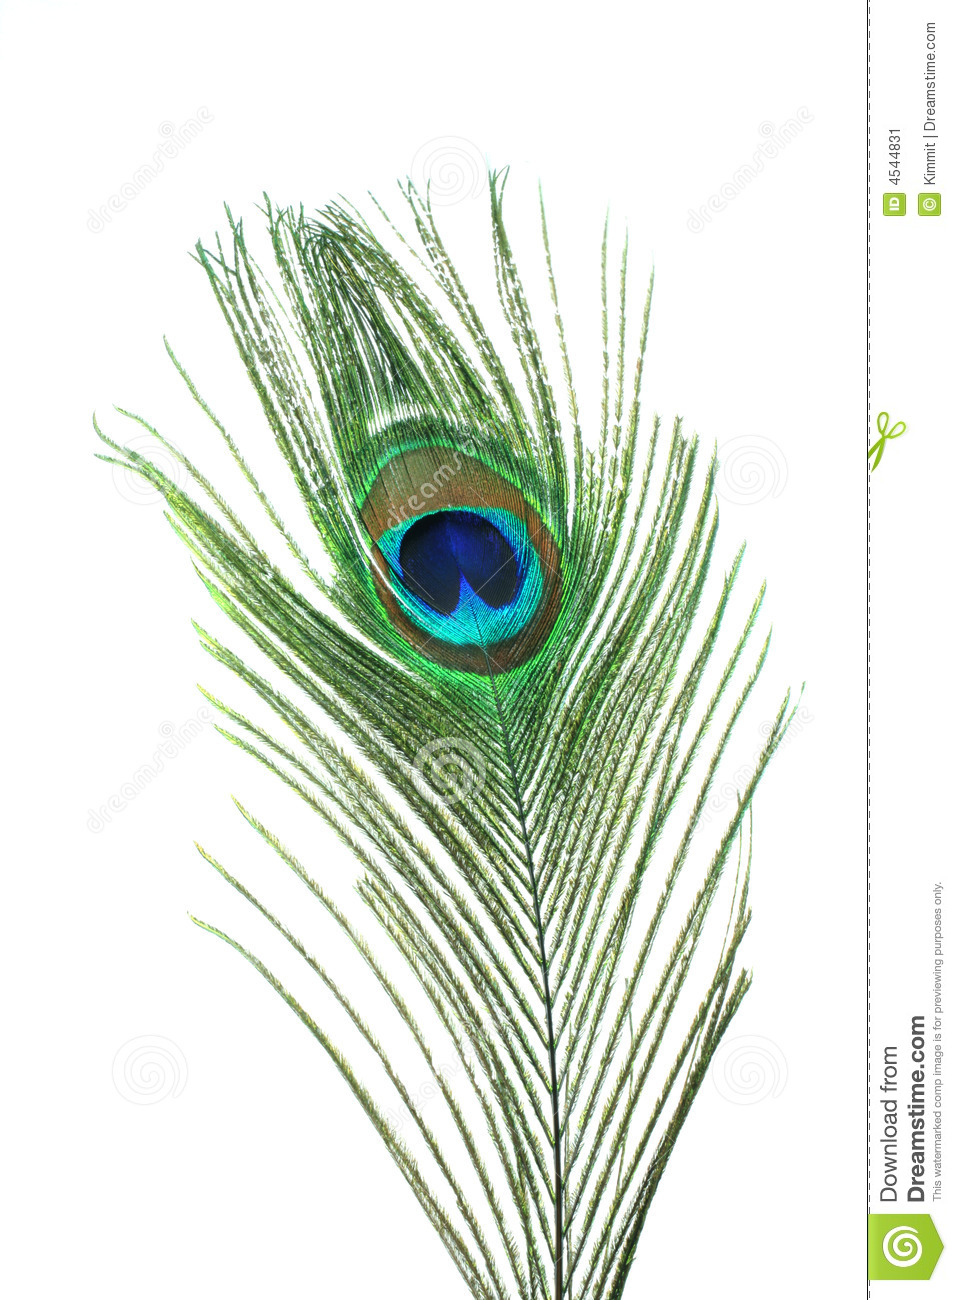 peacock feather stock image  image of fancy  plumage